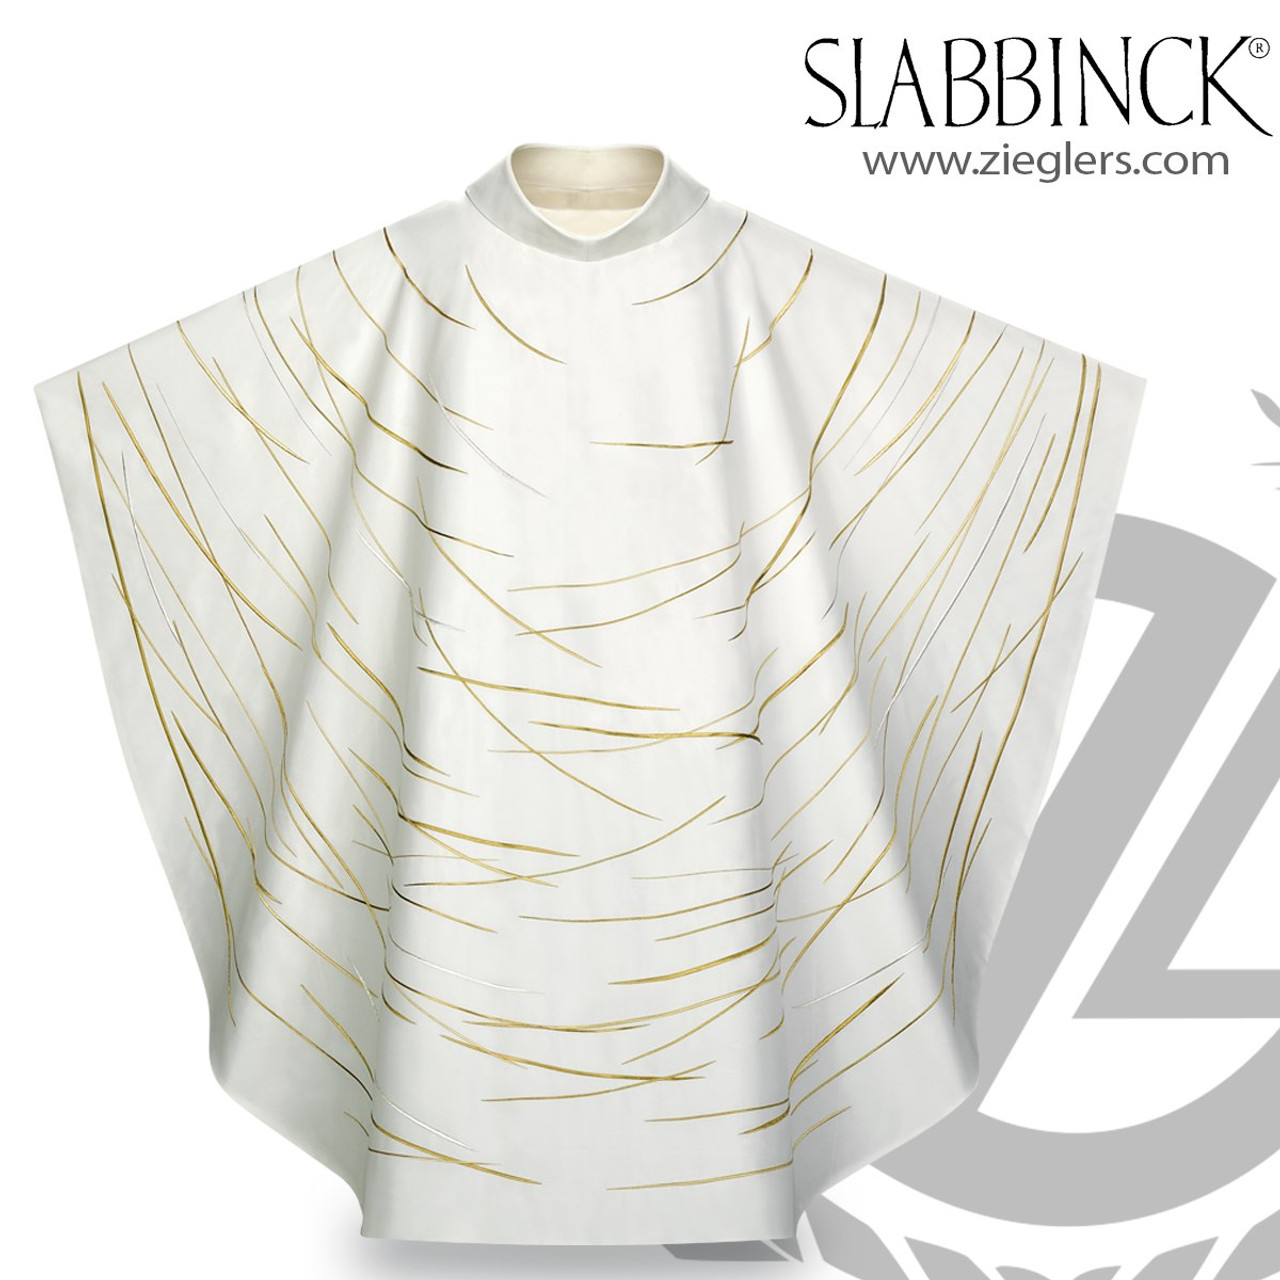 Gothic Chasuble | Lights of Fatima | Roll Collar | Silver & Gold on White |  Slabbinck